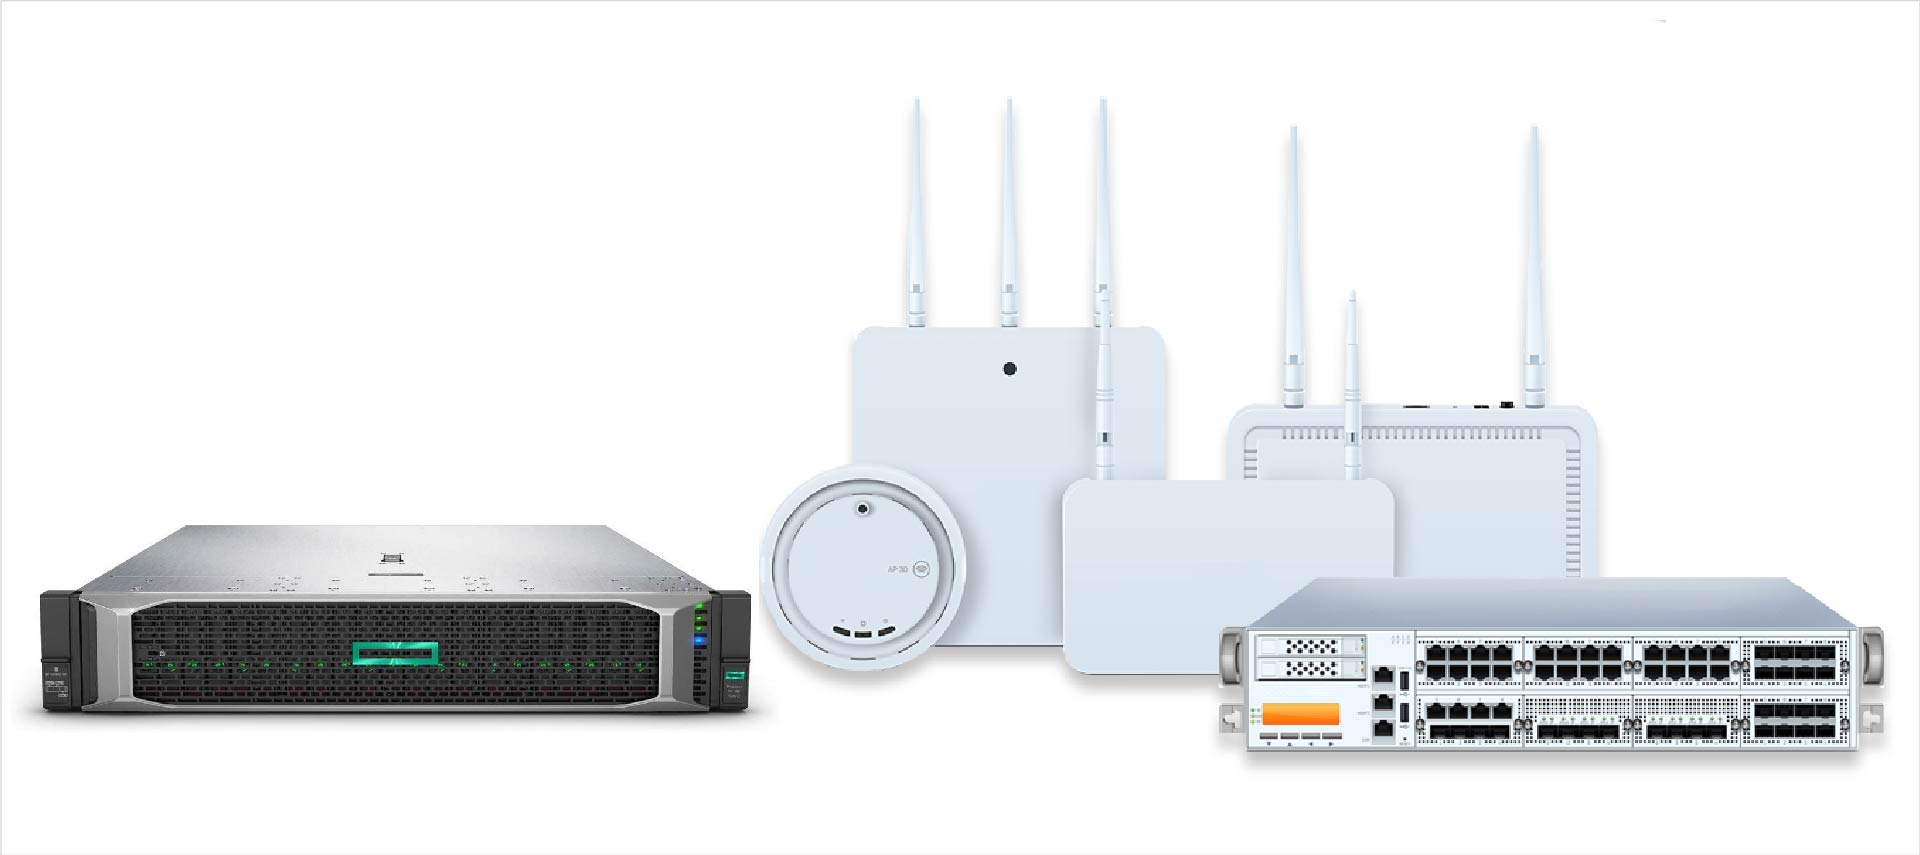 Managed Service – Network Device